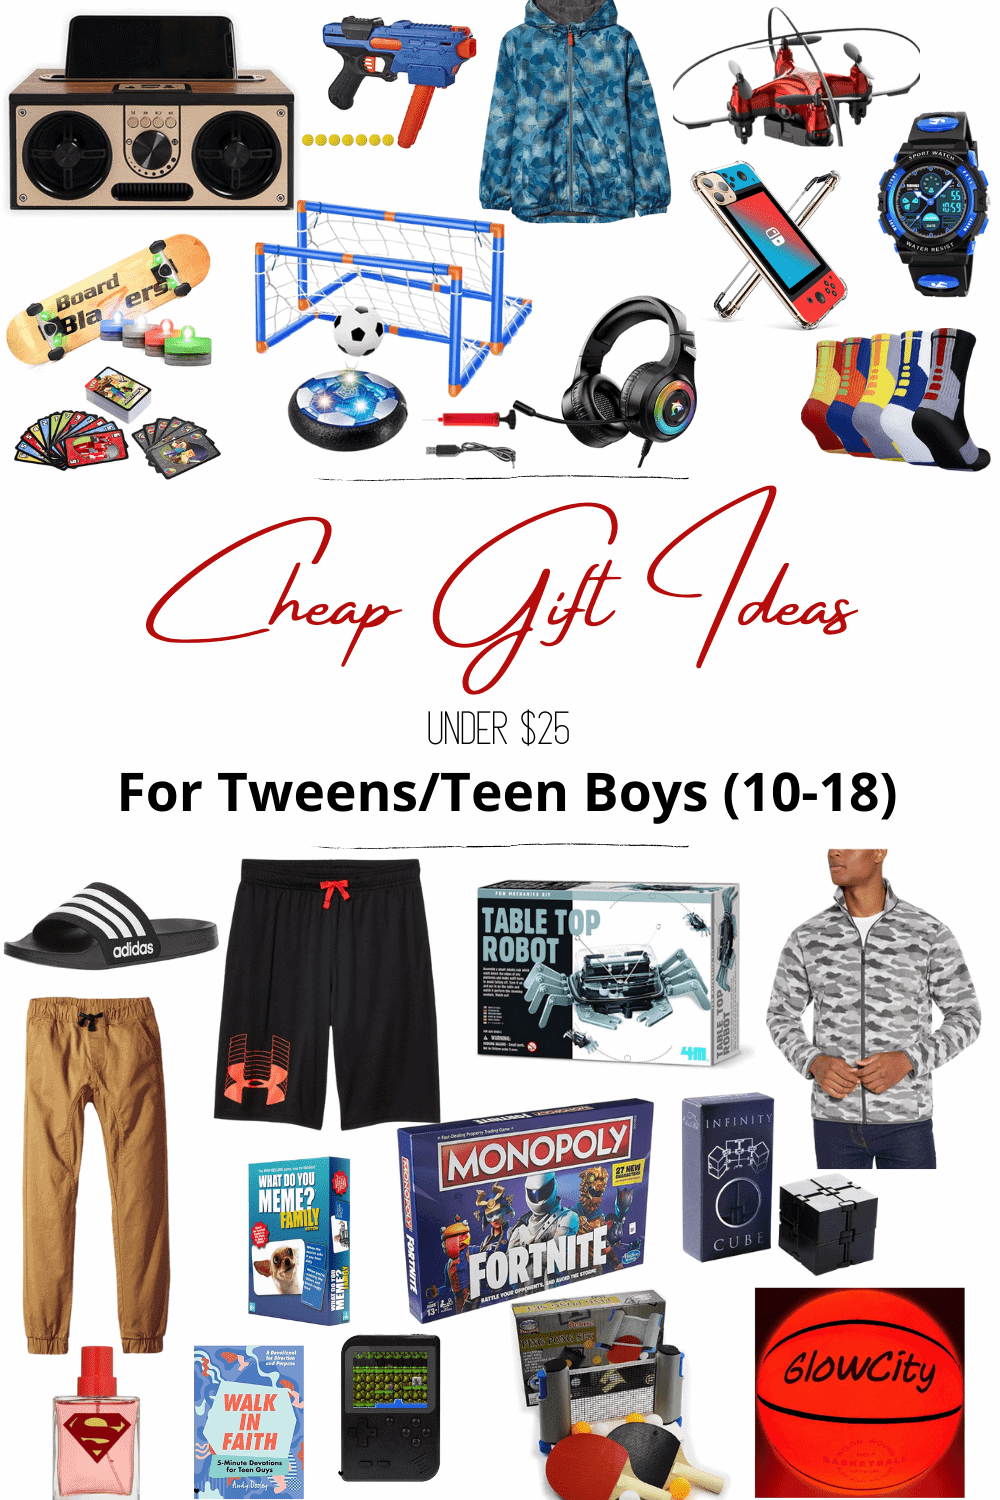 cheap gift ideas for tween and teen boys